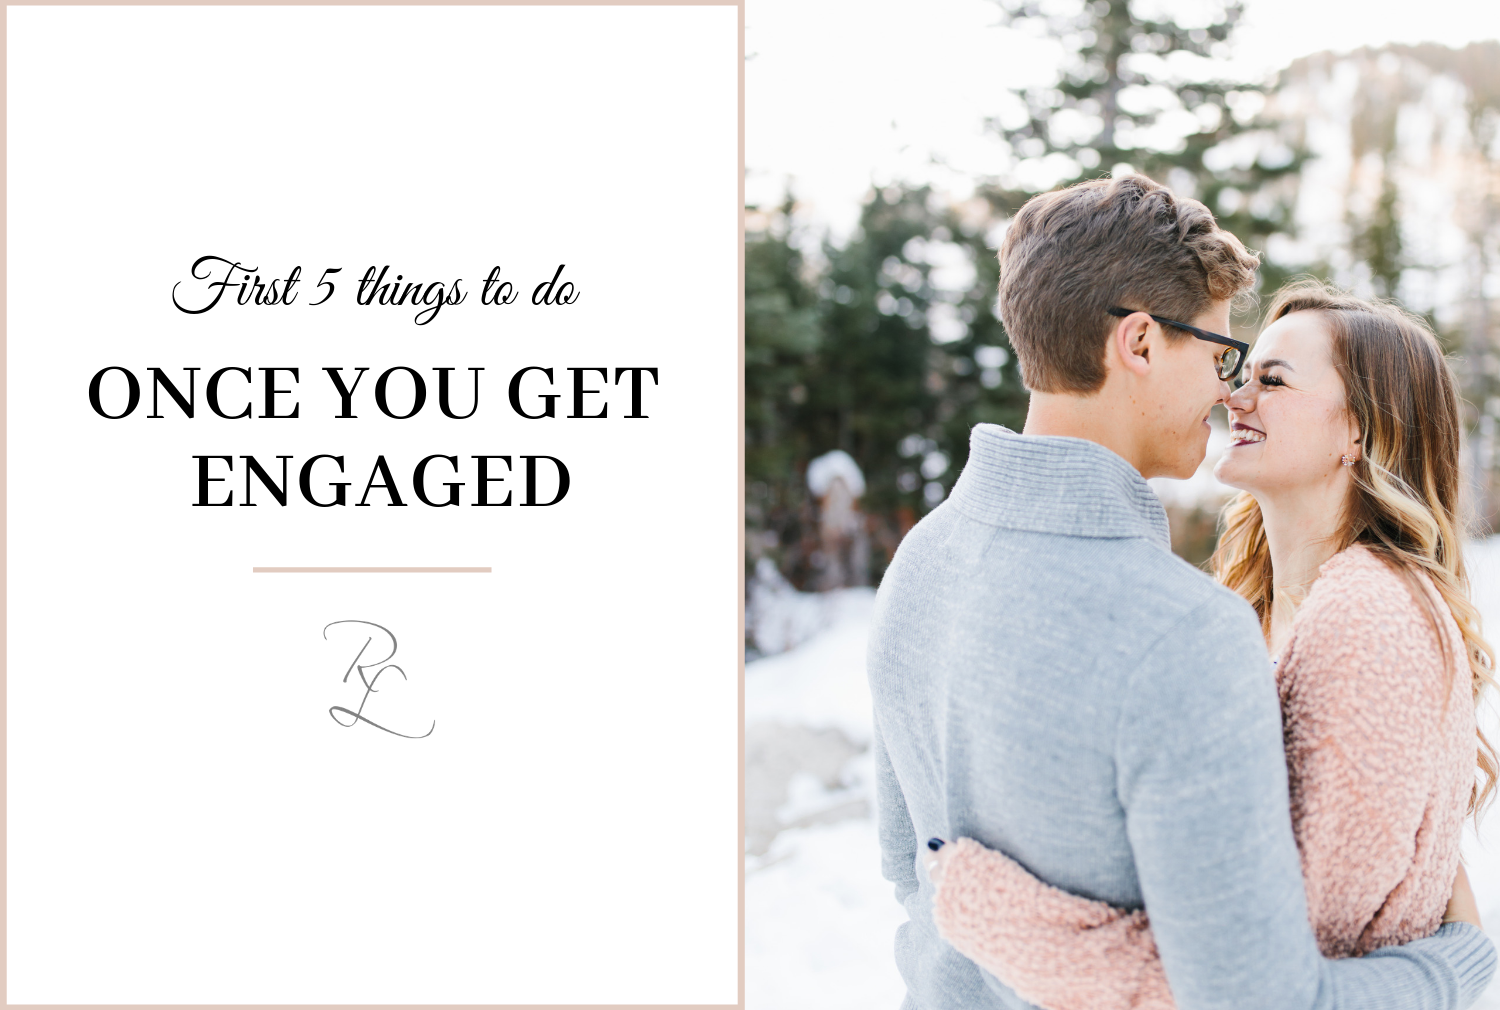 Ever wondered what to do after you get engaged?? I'll walk you through the first 5 things that should be on your to-do list!